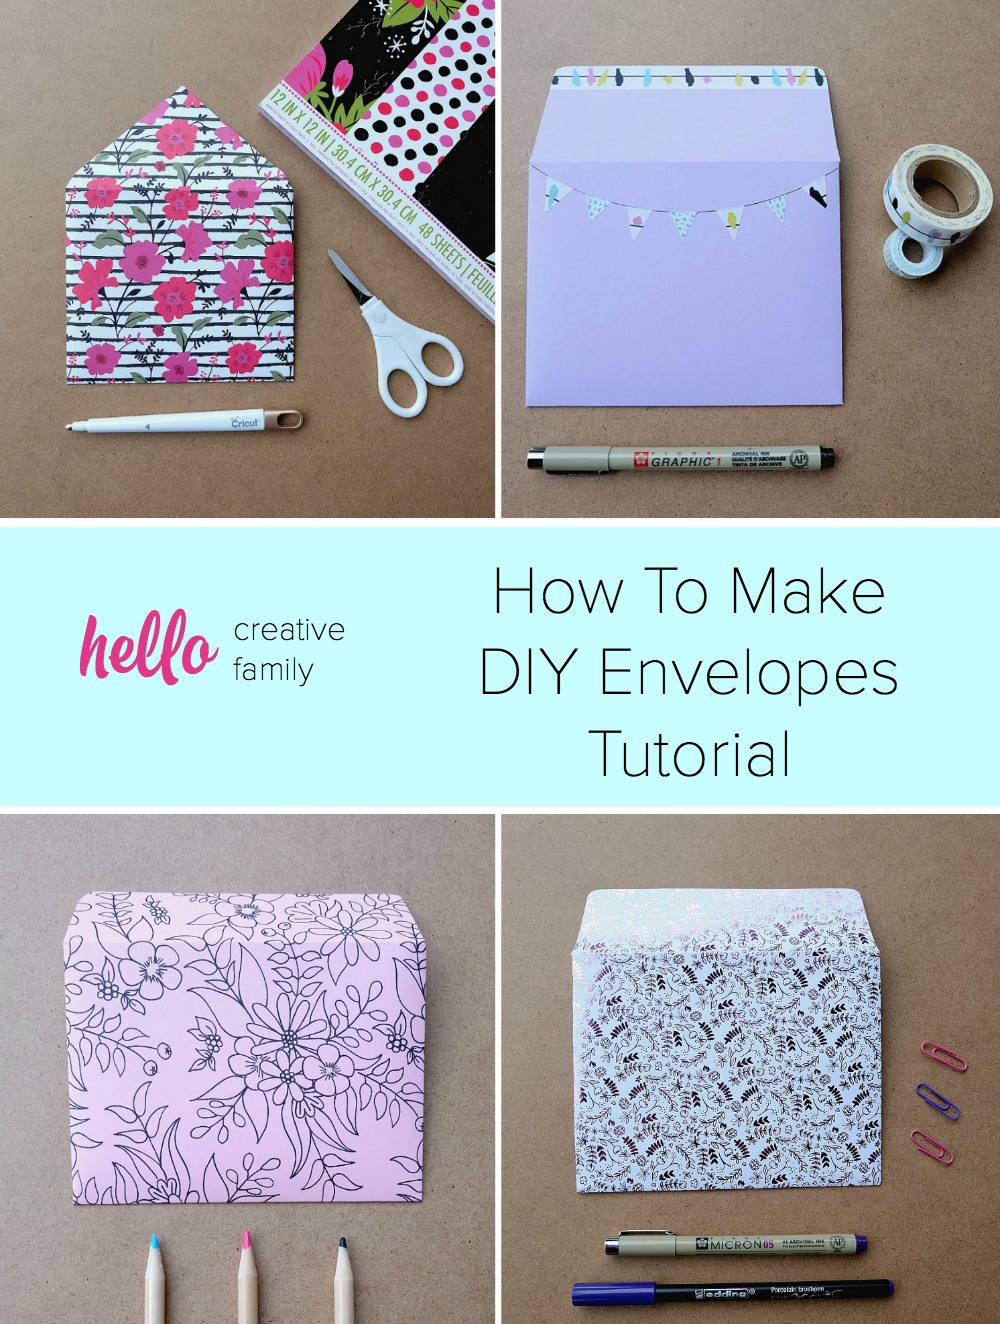 How to make diy envelopes tutorial hello creative family for How to make something with newspaper